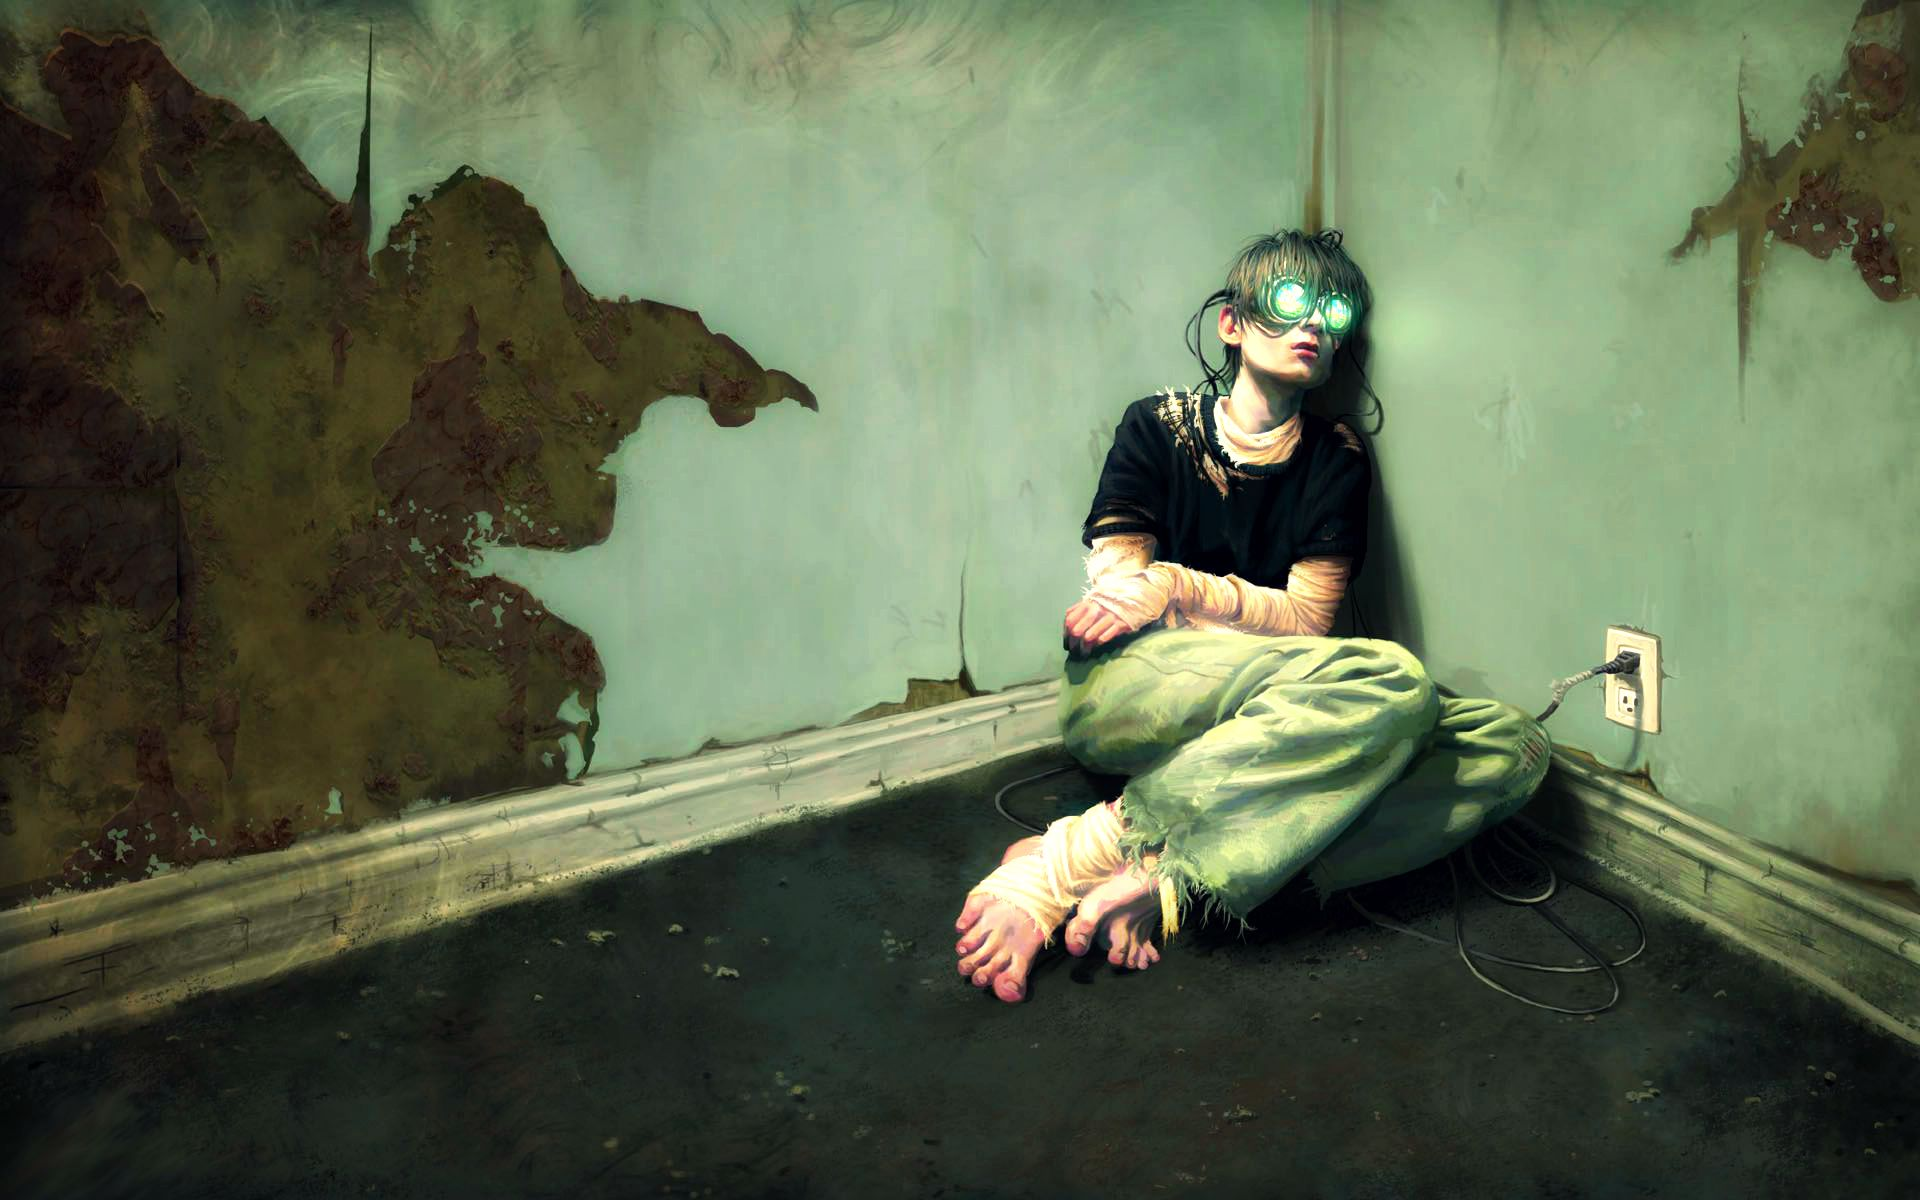 Boy With Virtual Reality Goggles On Face Sitting Alone In Room